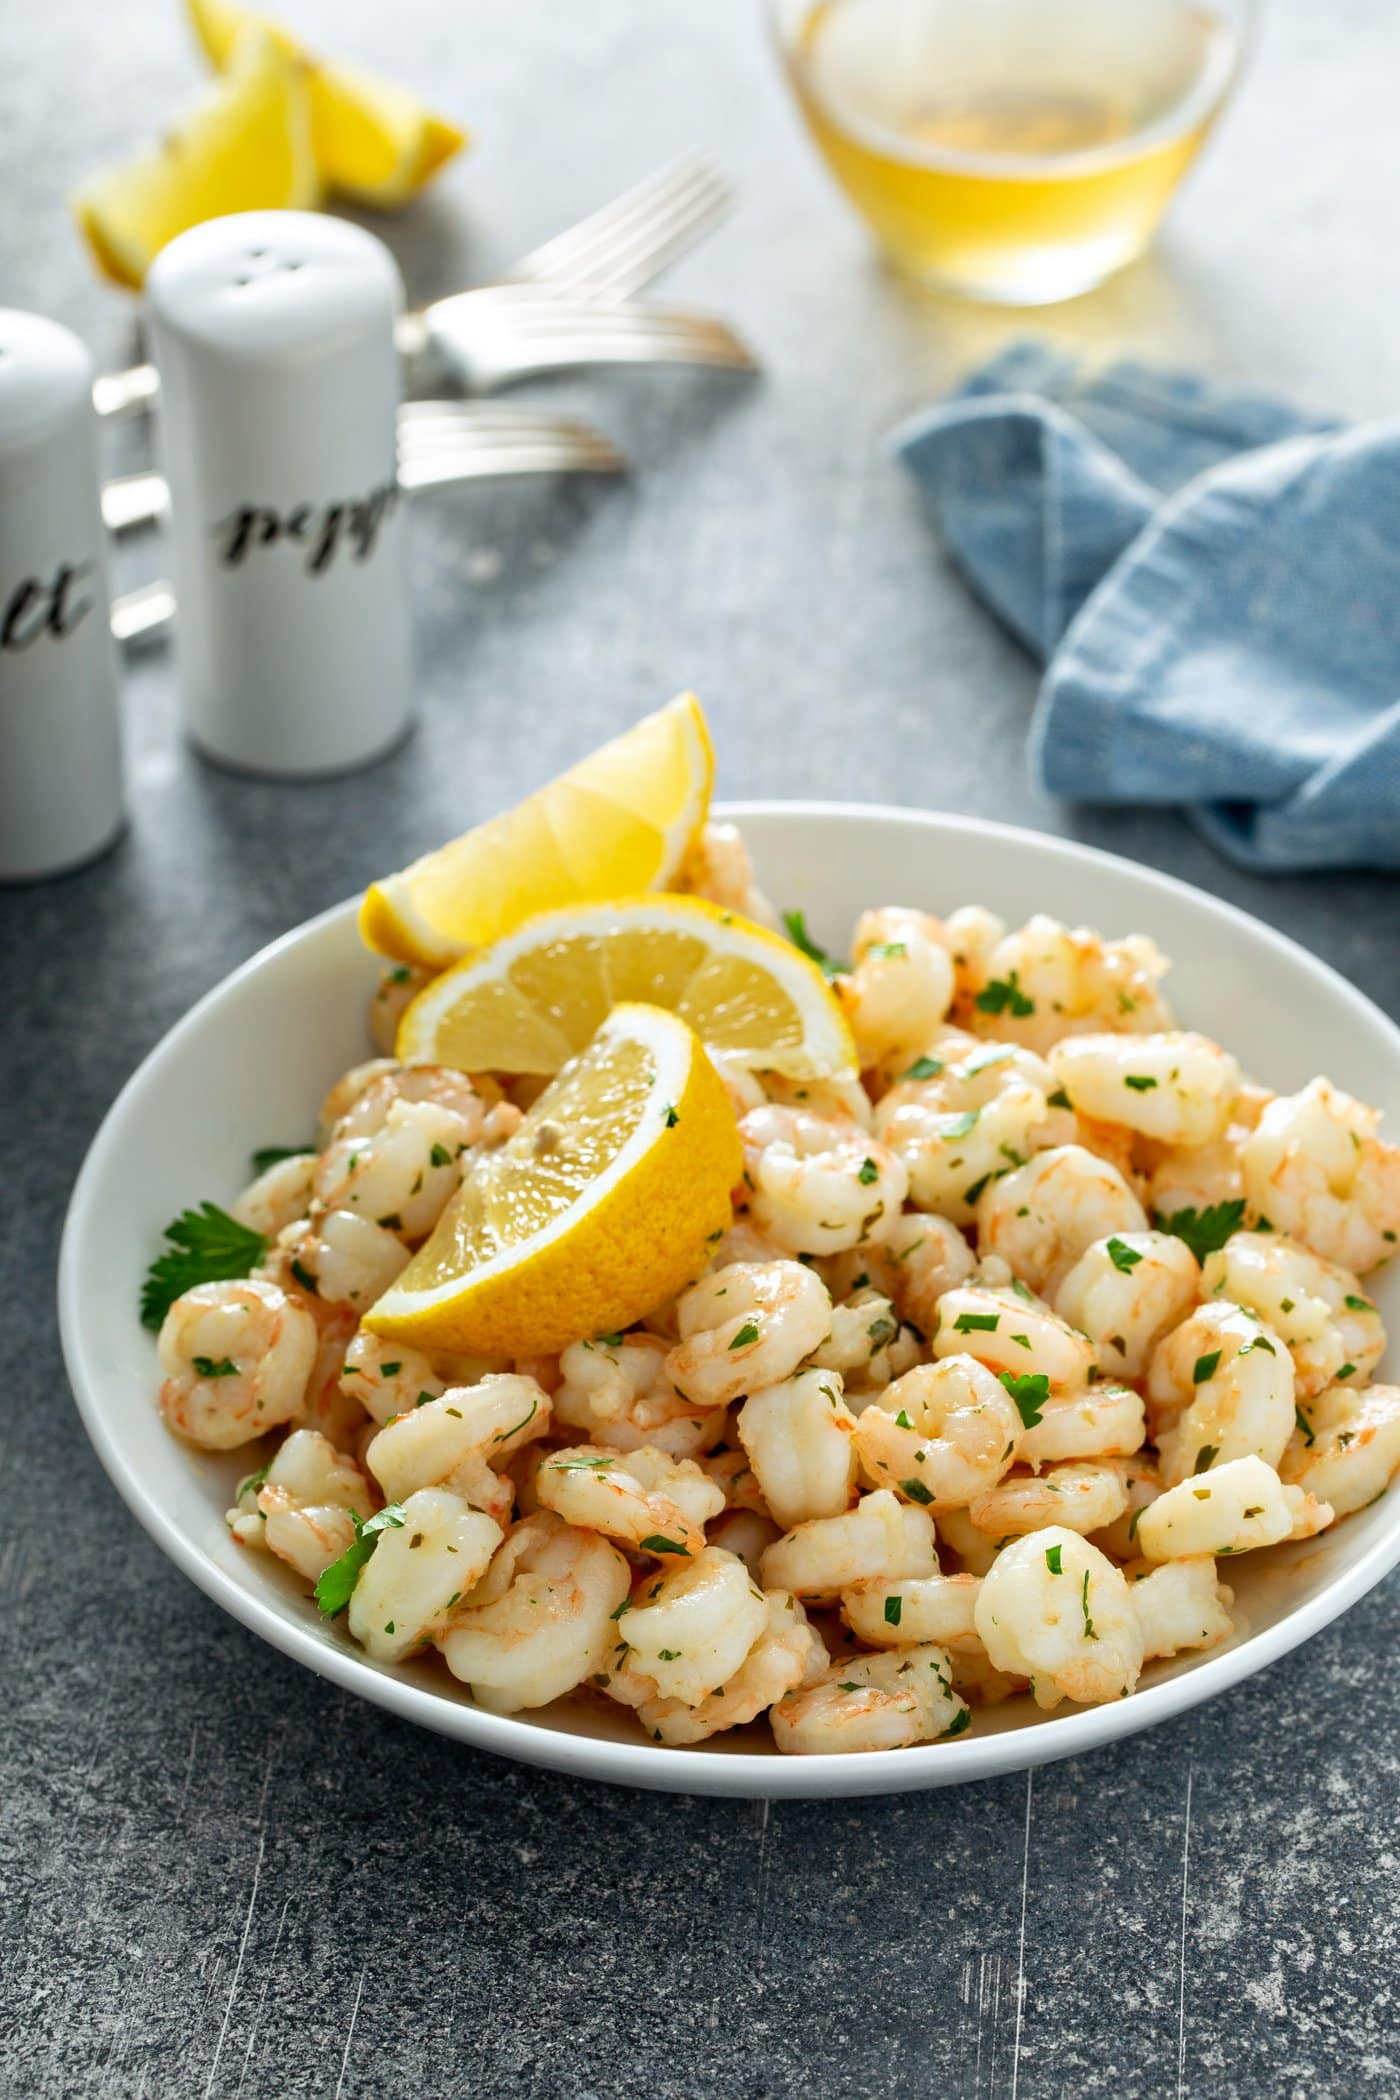 A white dish filled with lemon garlic shrimp. There are three lemon wedges on top of the shrimp and it is all sprinkled with fresh parsley. There is a blue napkin and white salt and pepper shakers in the background.